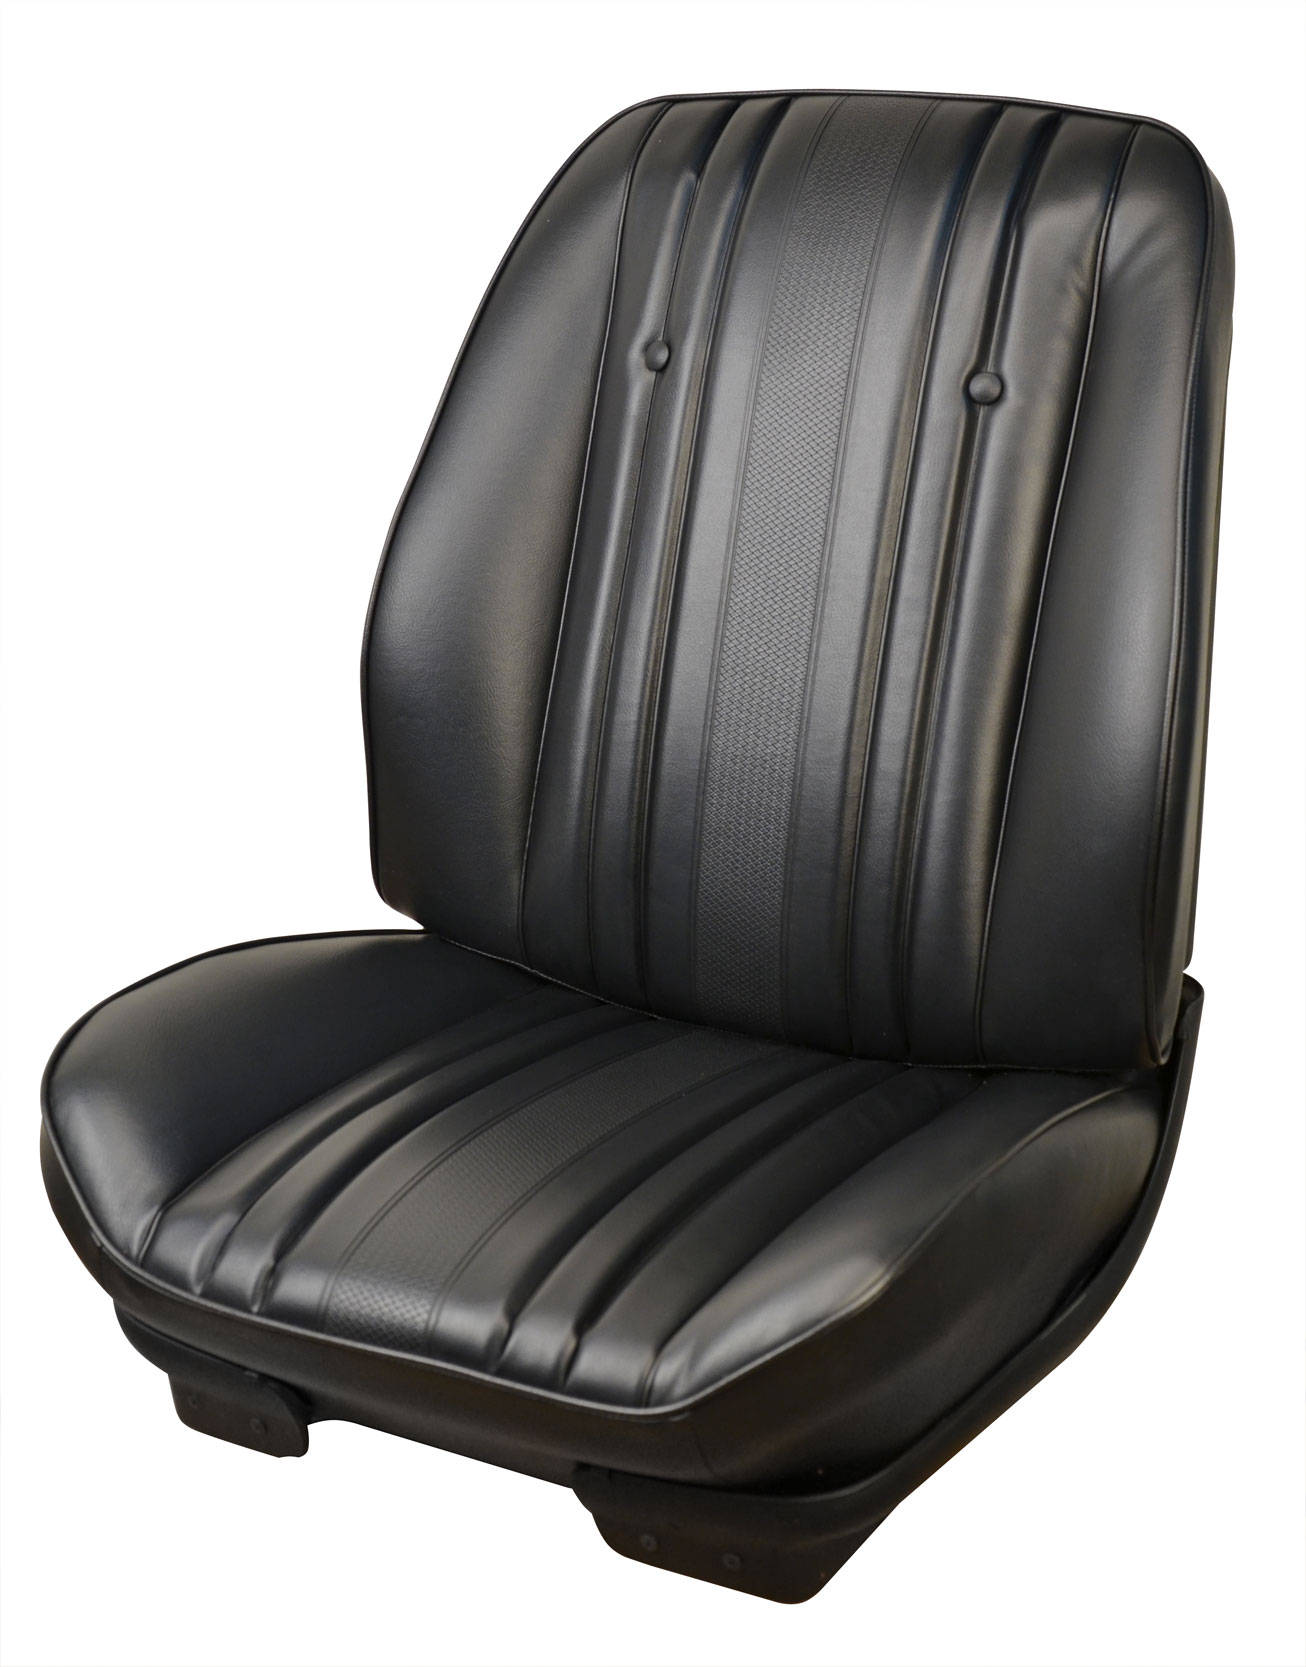 69 Chevelle Convertible Tmi Sport Front Bucket Seat Cover